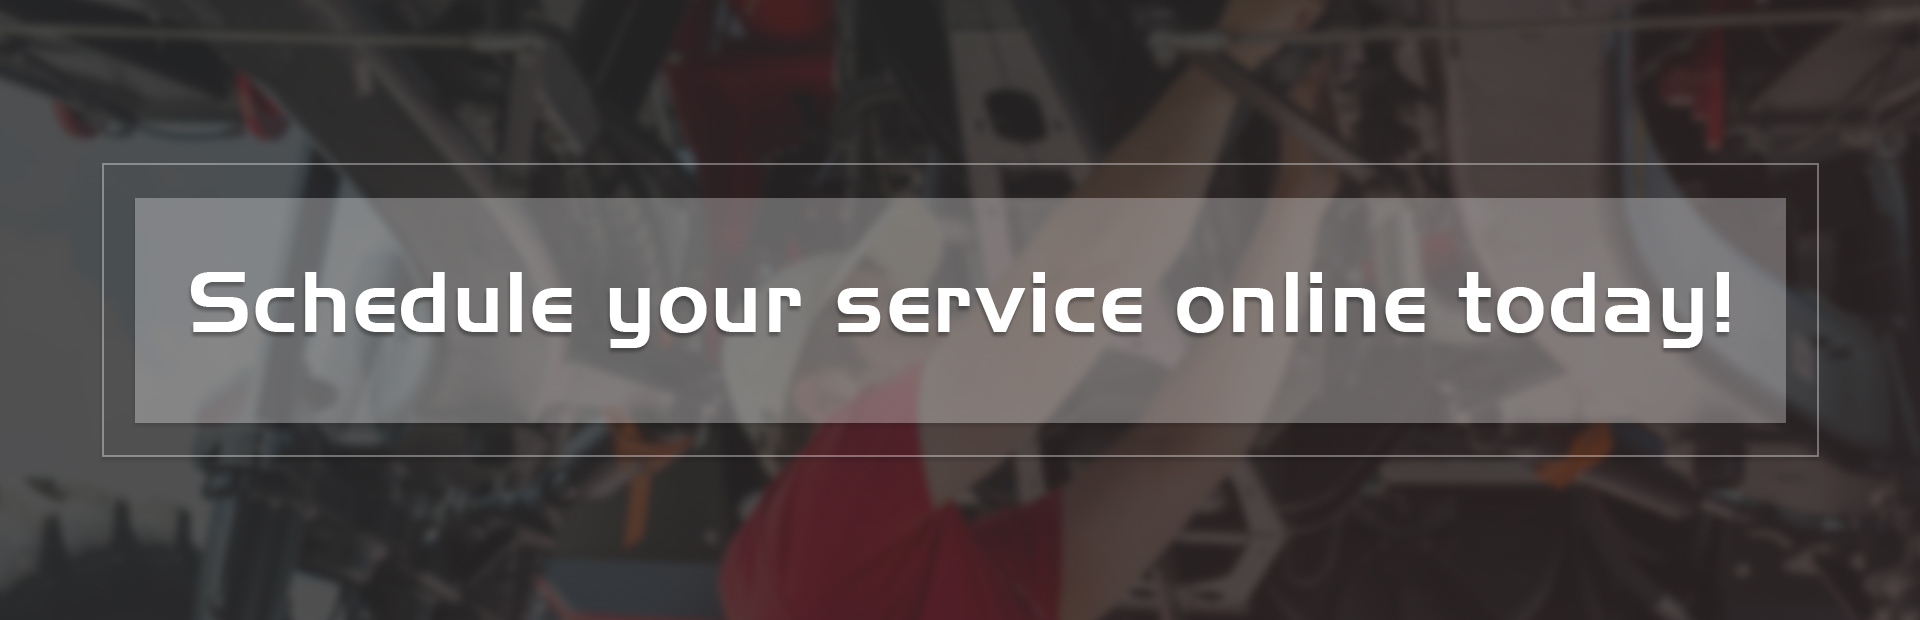 Schedule your service online today!